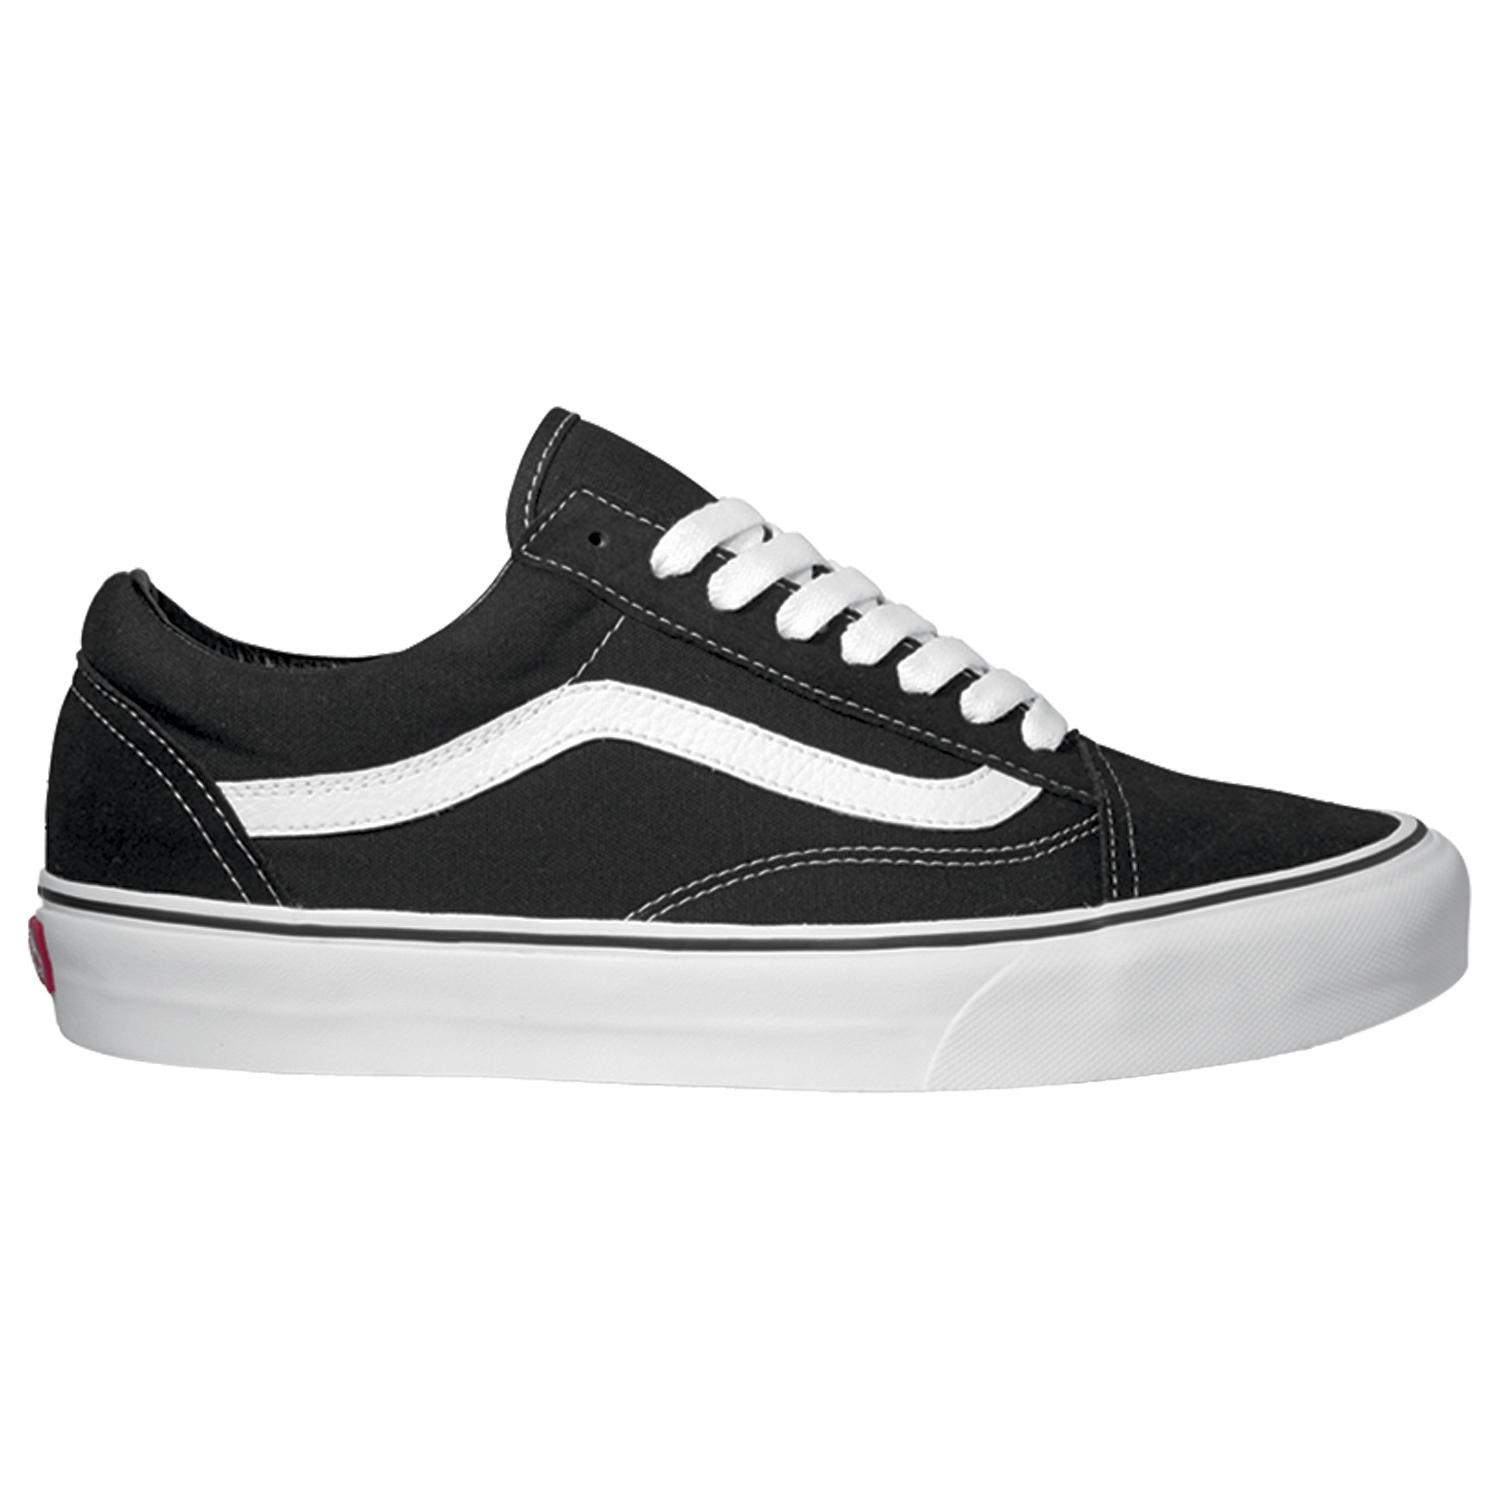 vans-old-skool-black-129-90